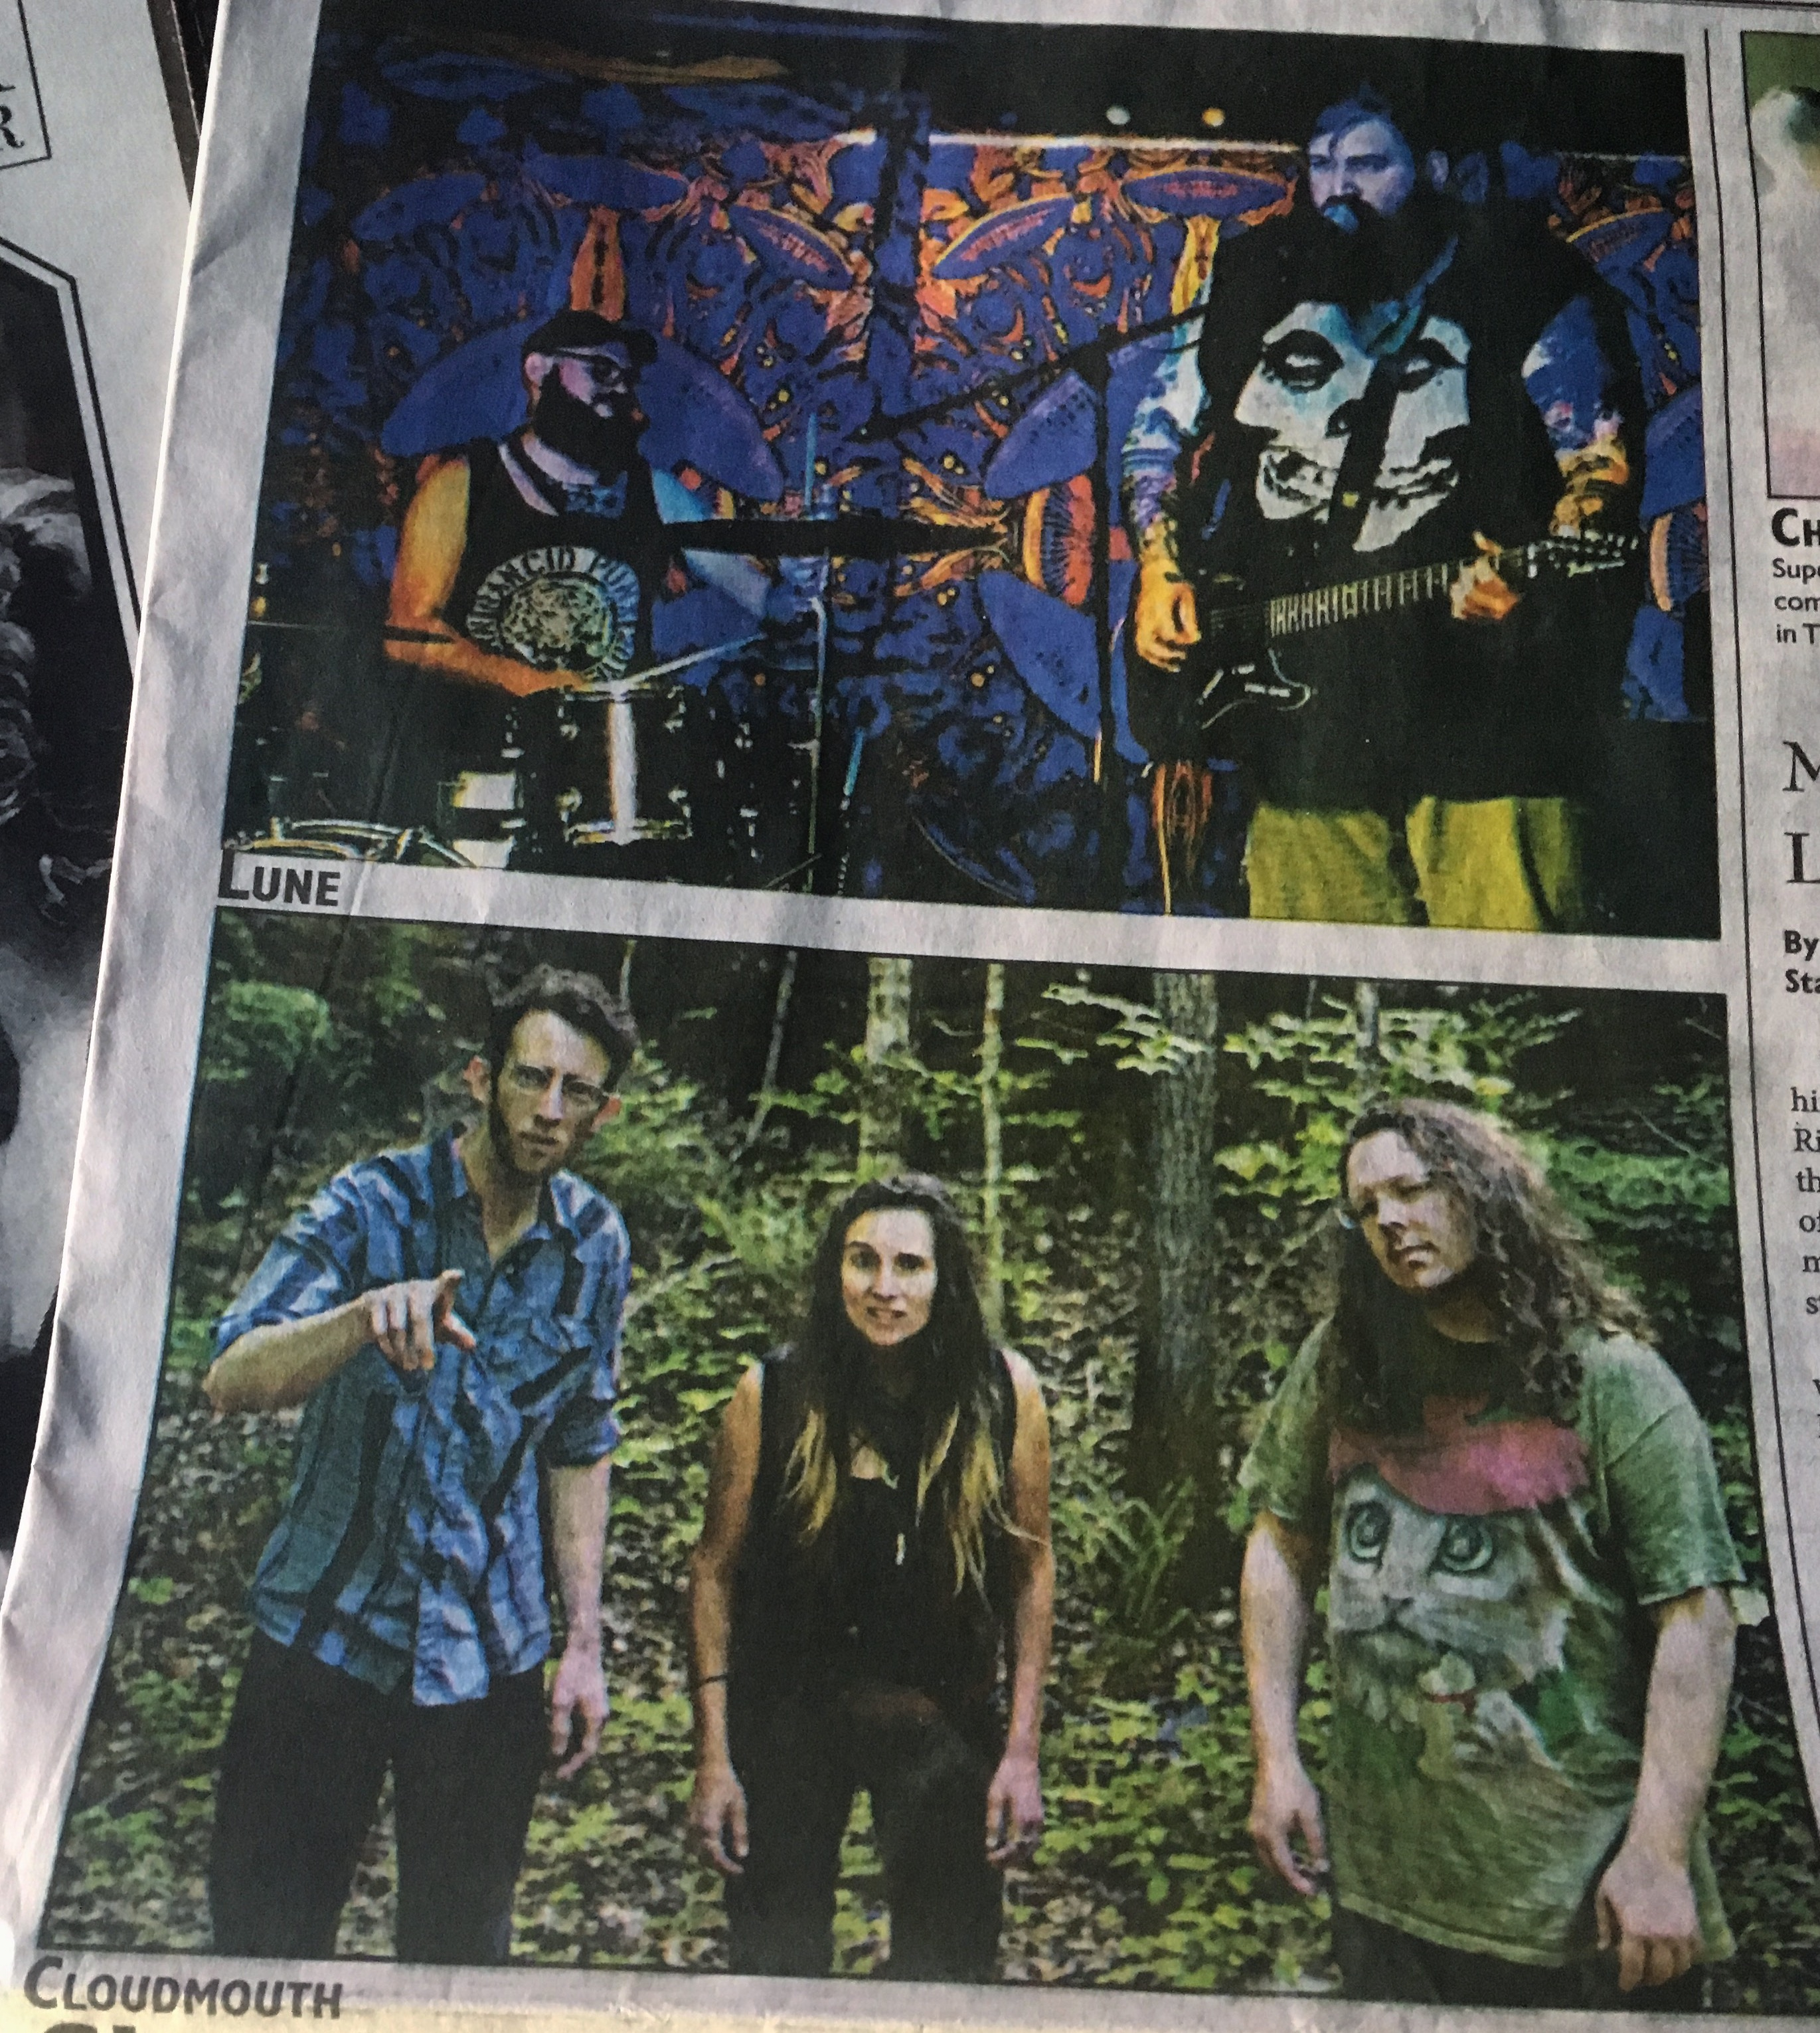 cloudmouth & lune - newspaper image